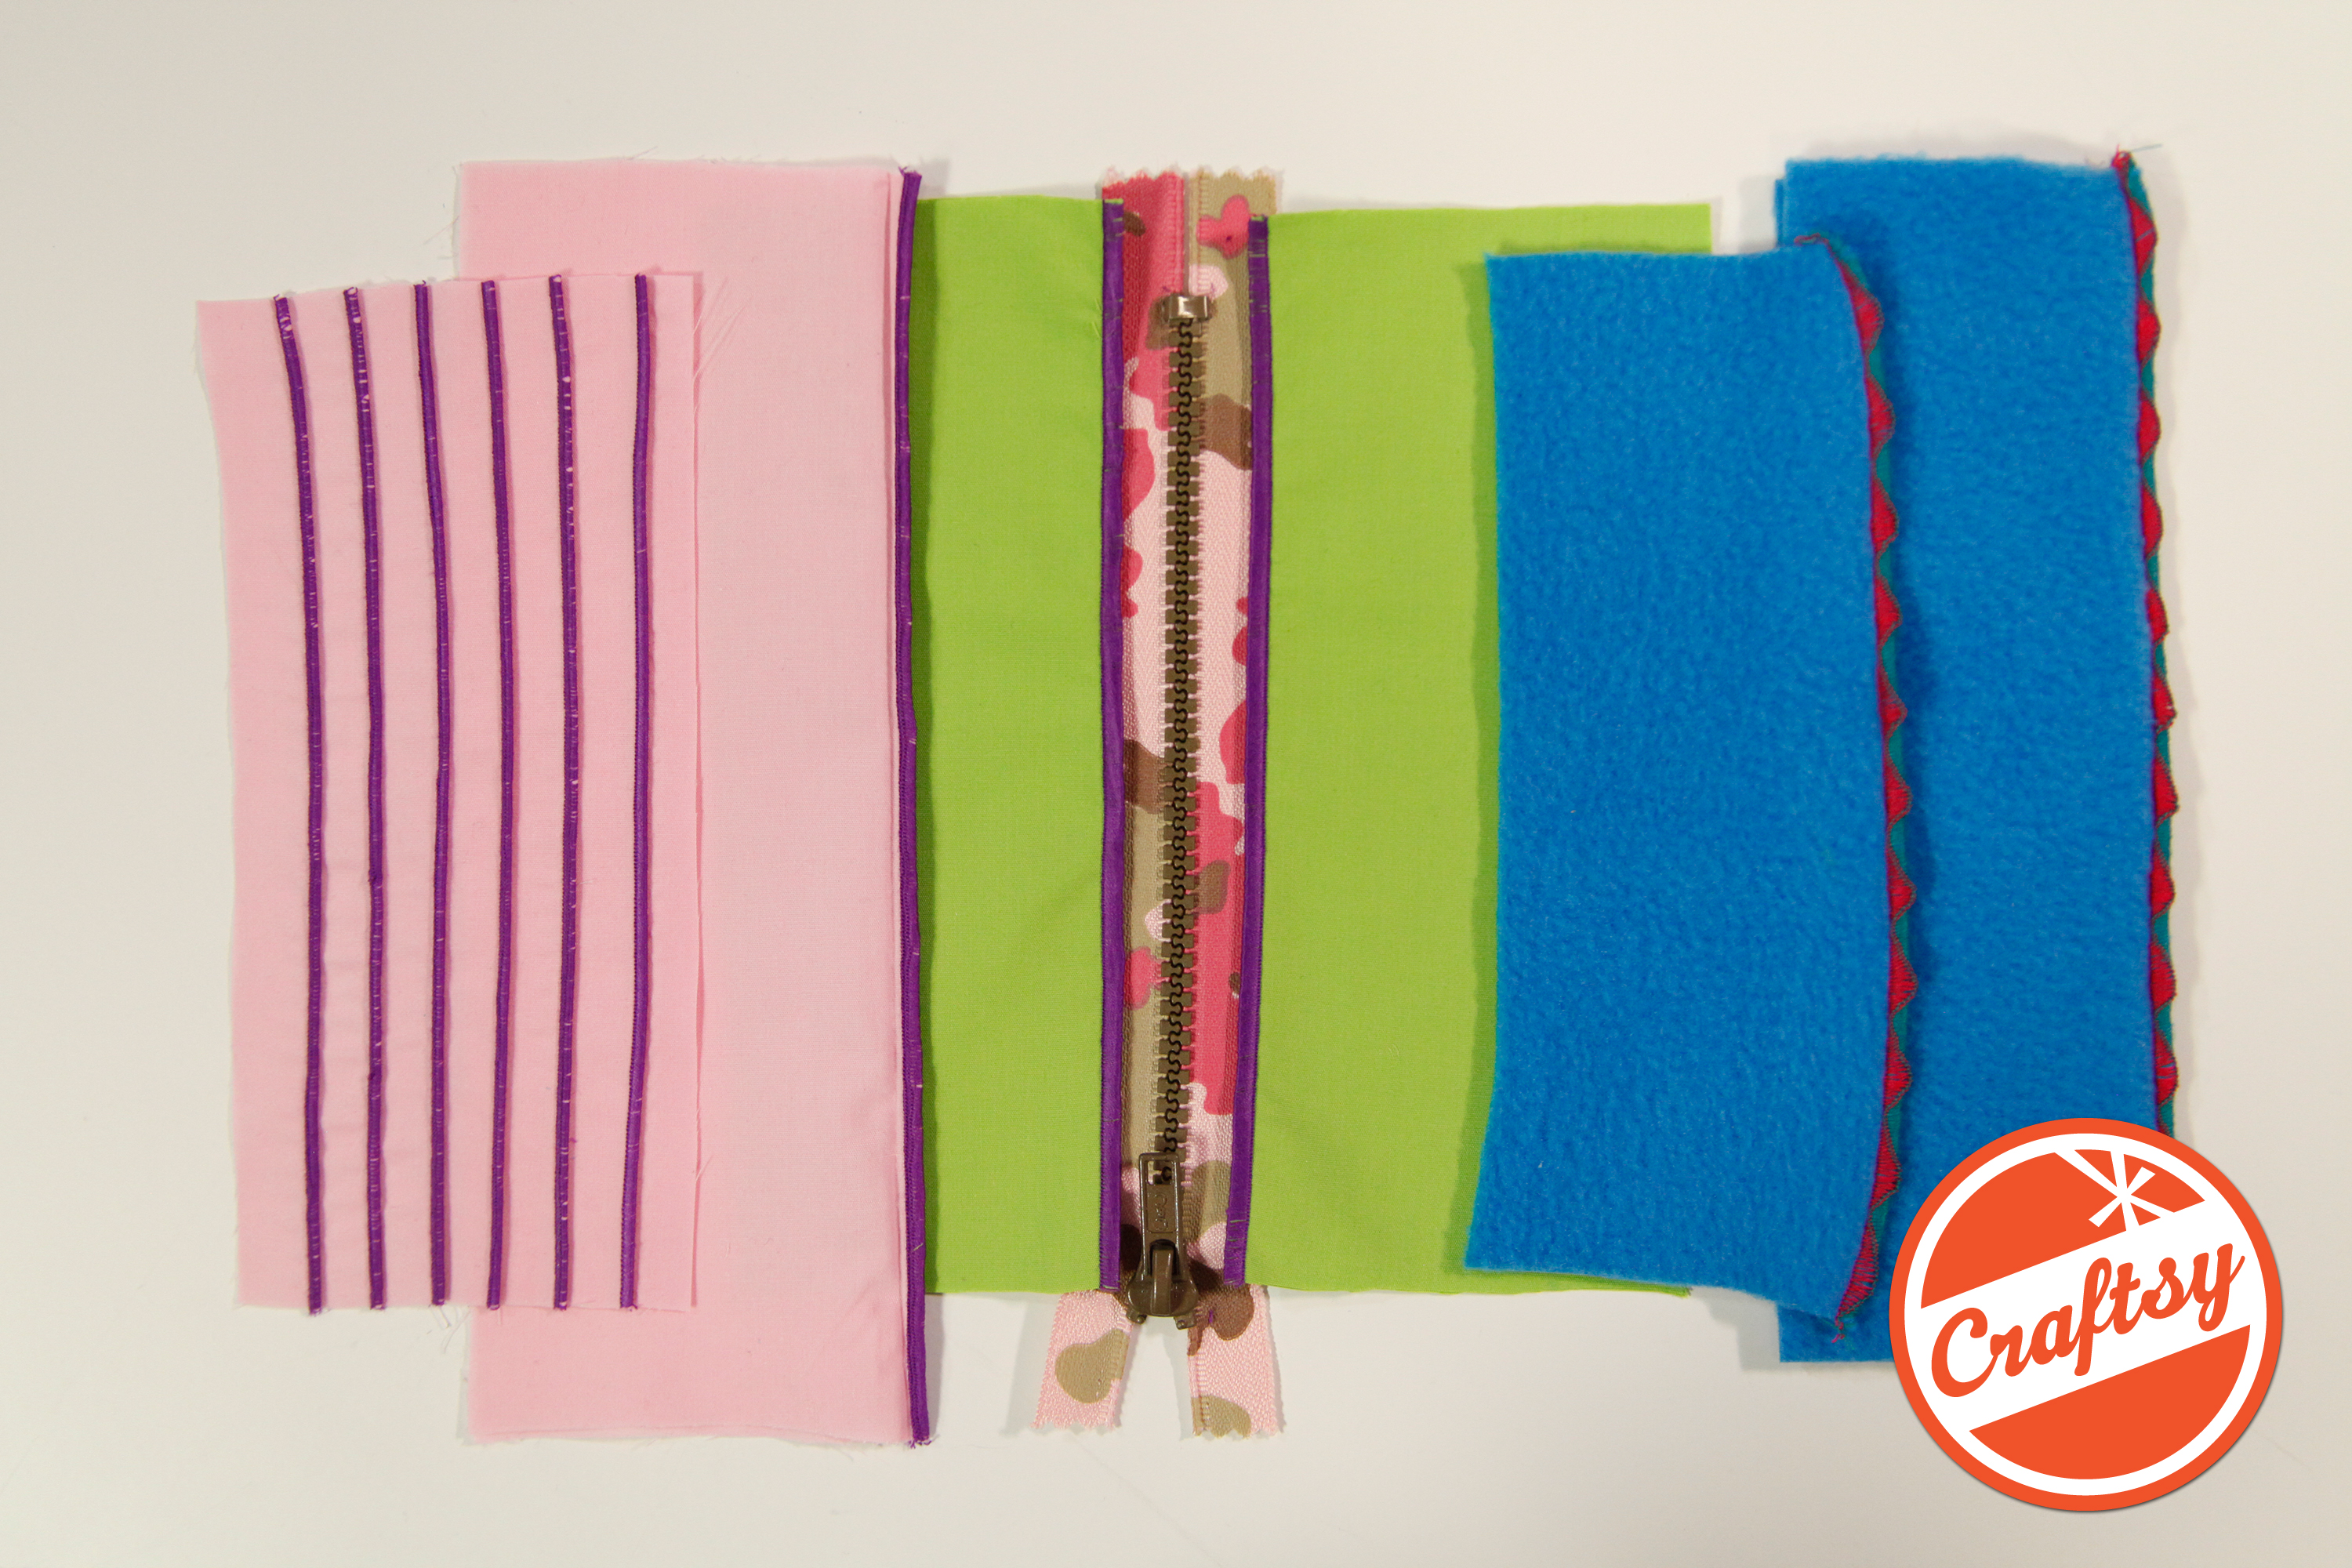 Looking for more creative serging ideas? Join my on Craftsy with 50% OFF today!